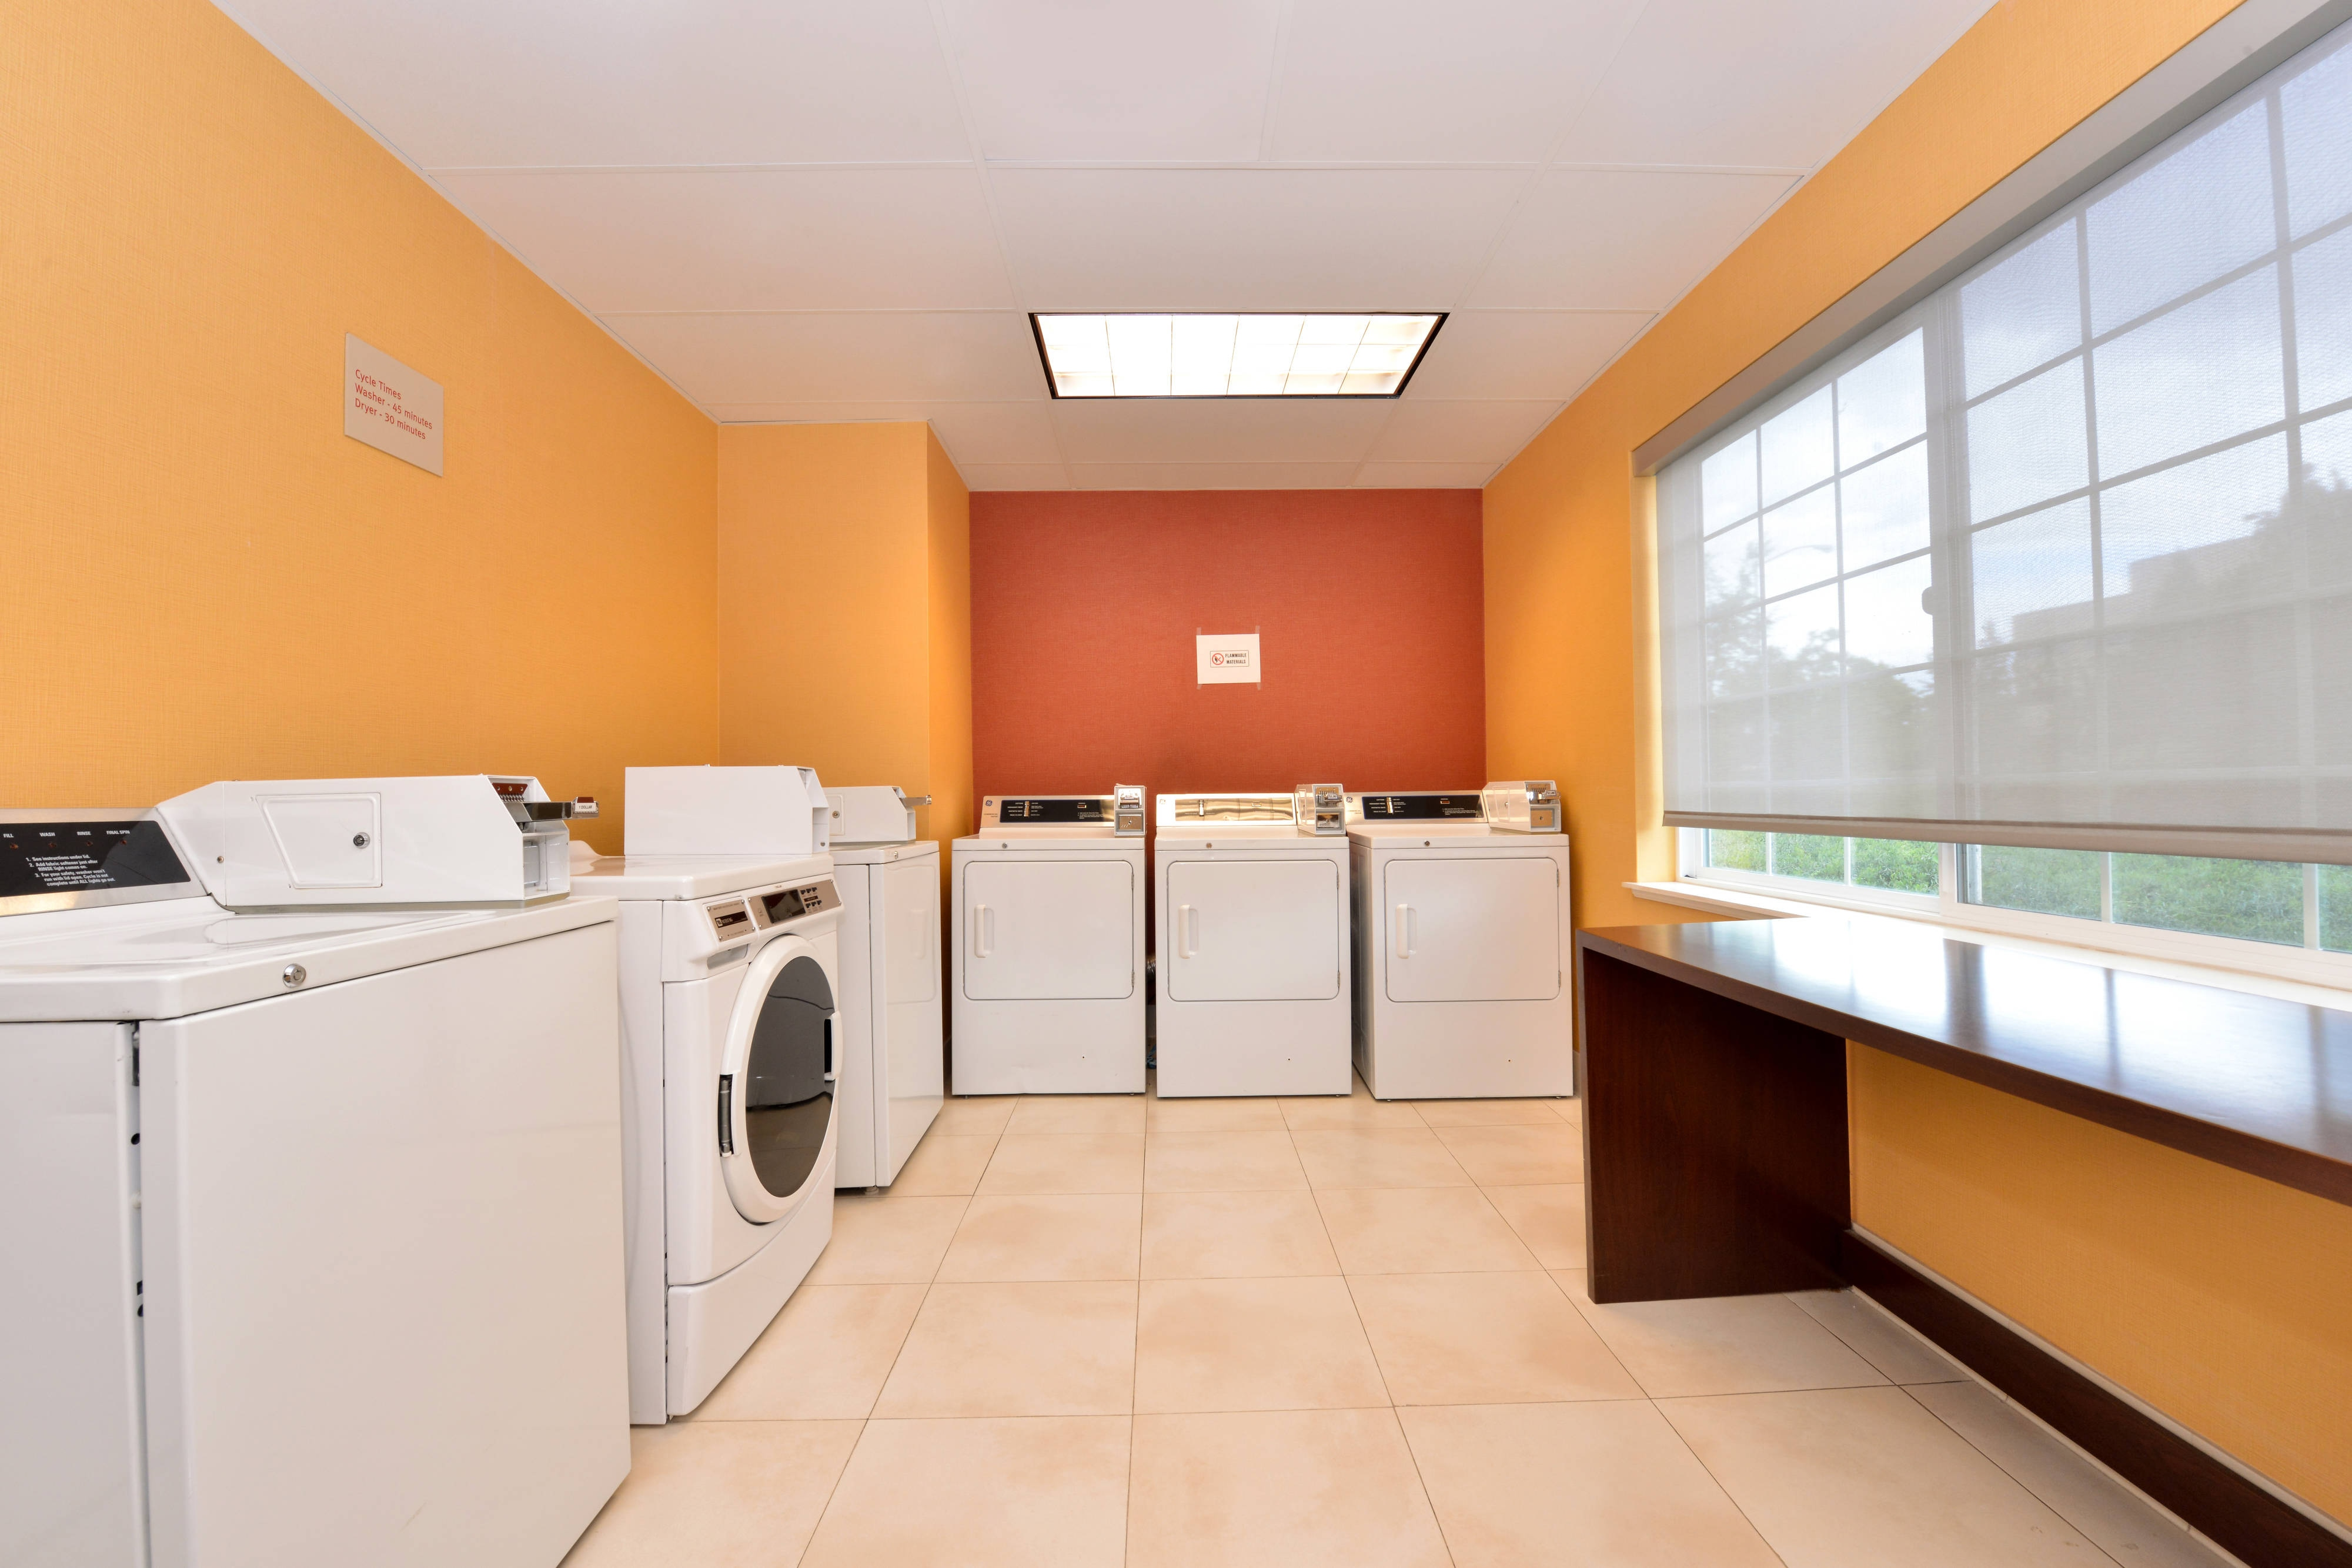 TownePlace Suites 24-Hour Laundry Facilities